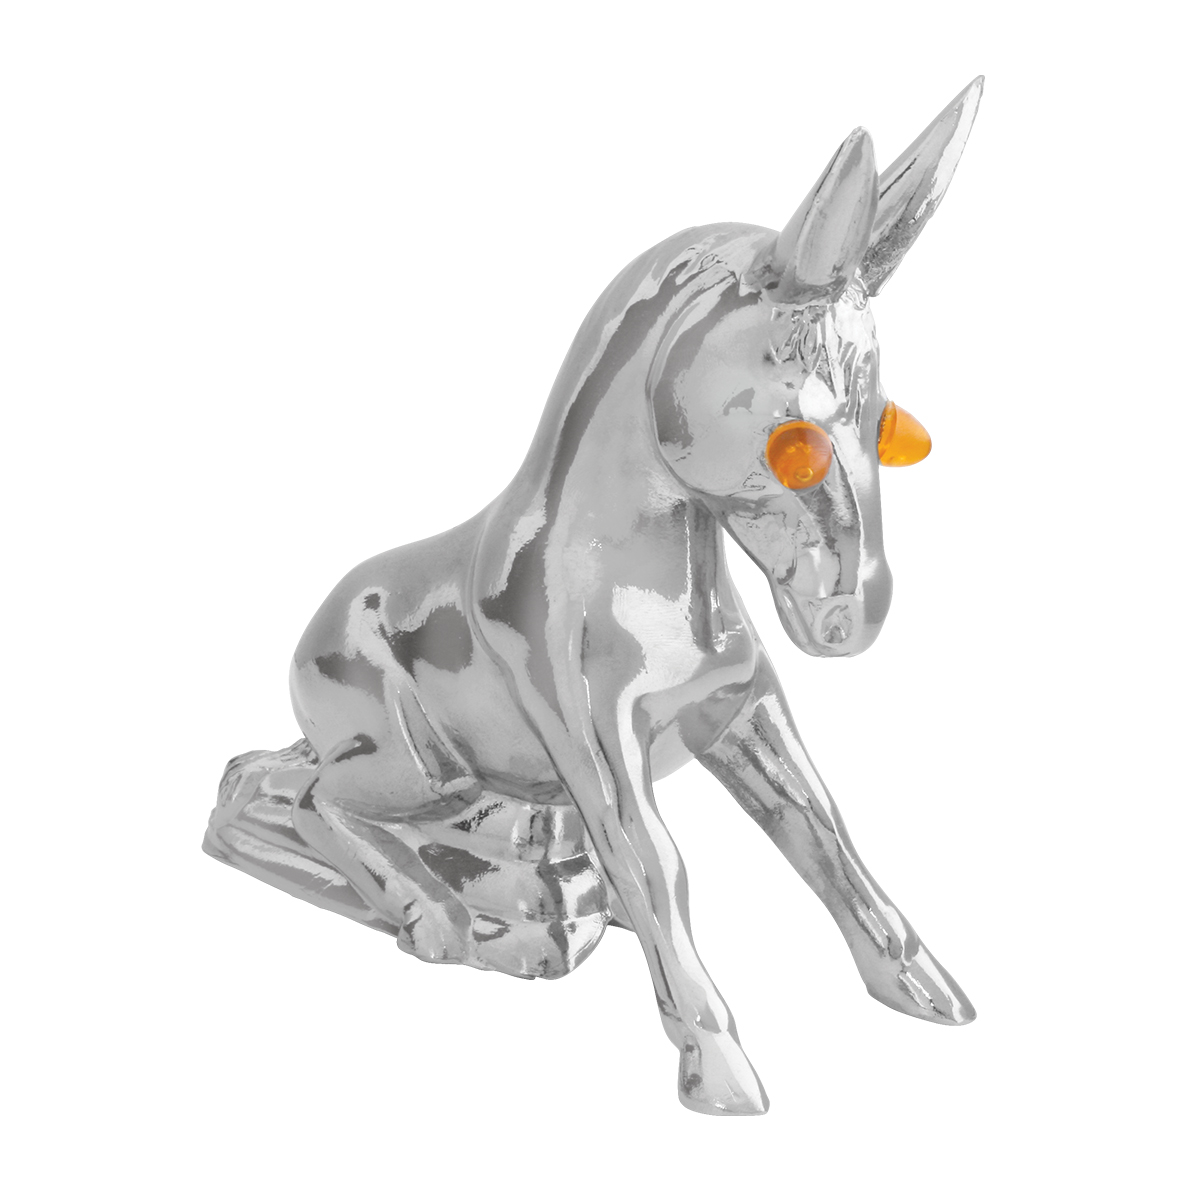 Chrome Die Cast Novelty Donkey w/Illuminated Eyes – Eyes Unlit